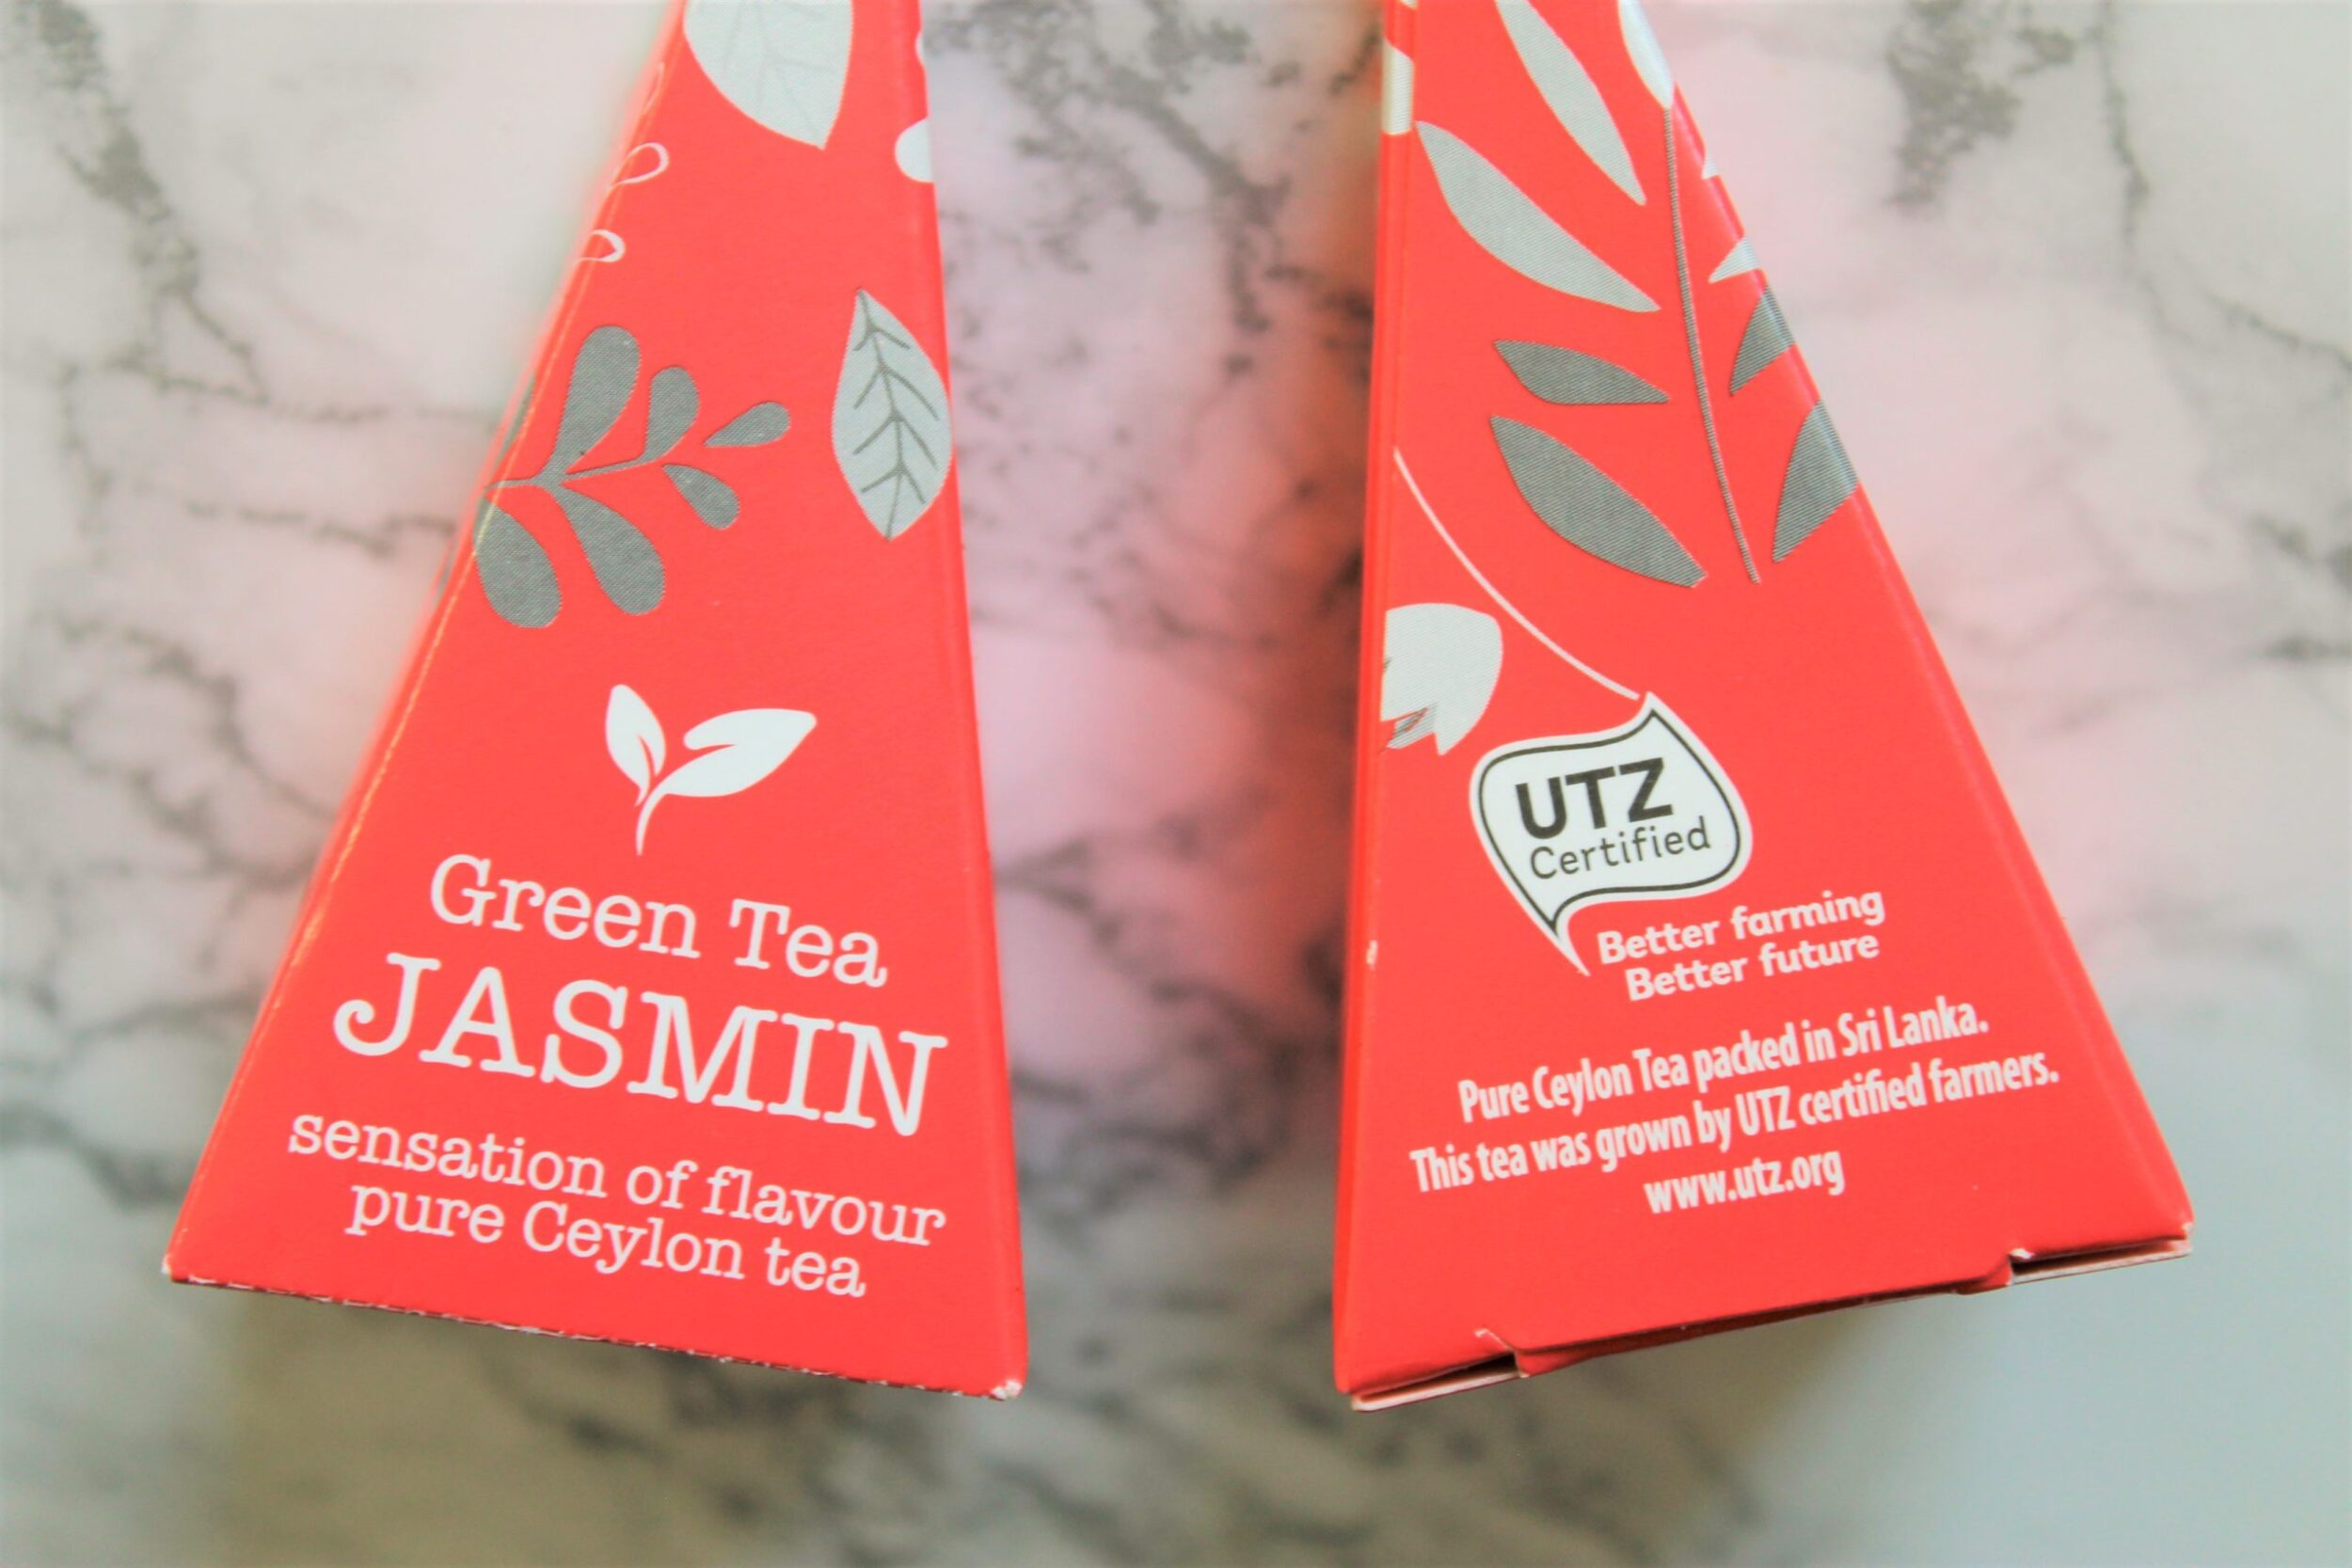 jasmin green tea pyramids